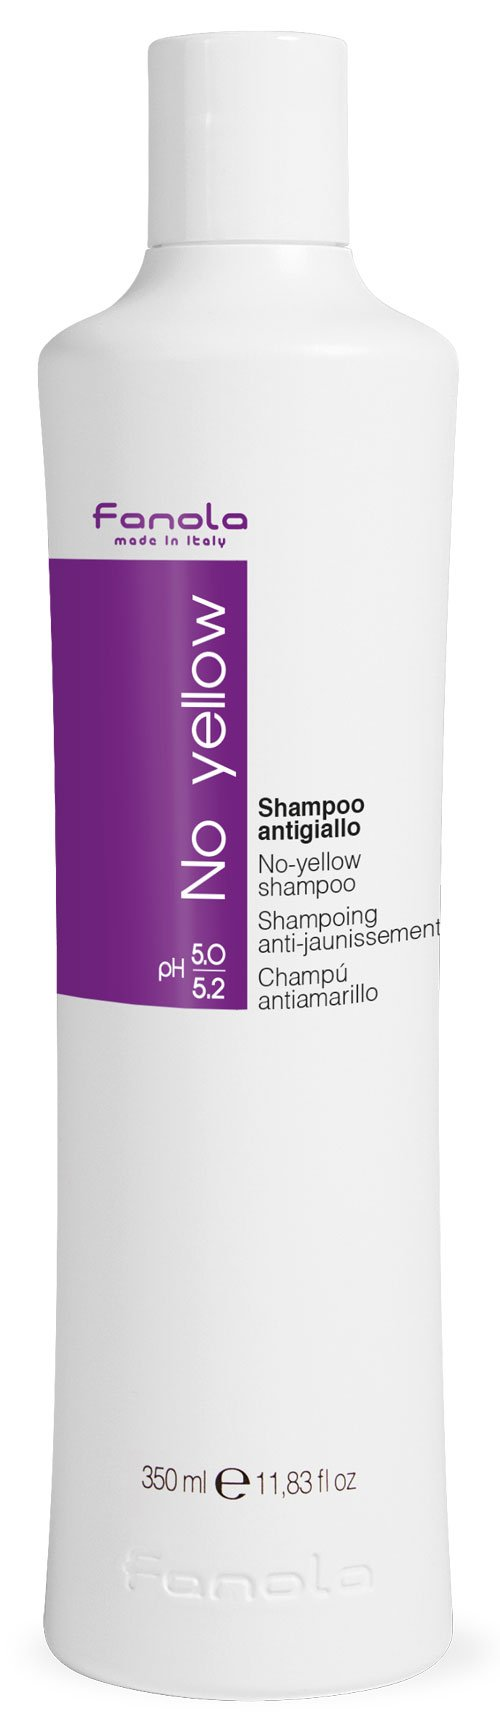 Fanola No Yellow Shampoo, 350 ml by Fanola